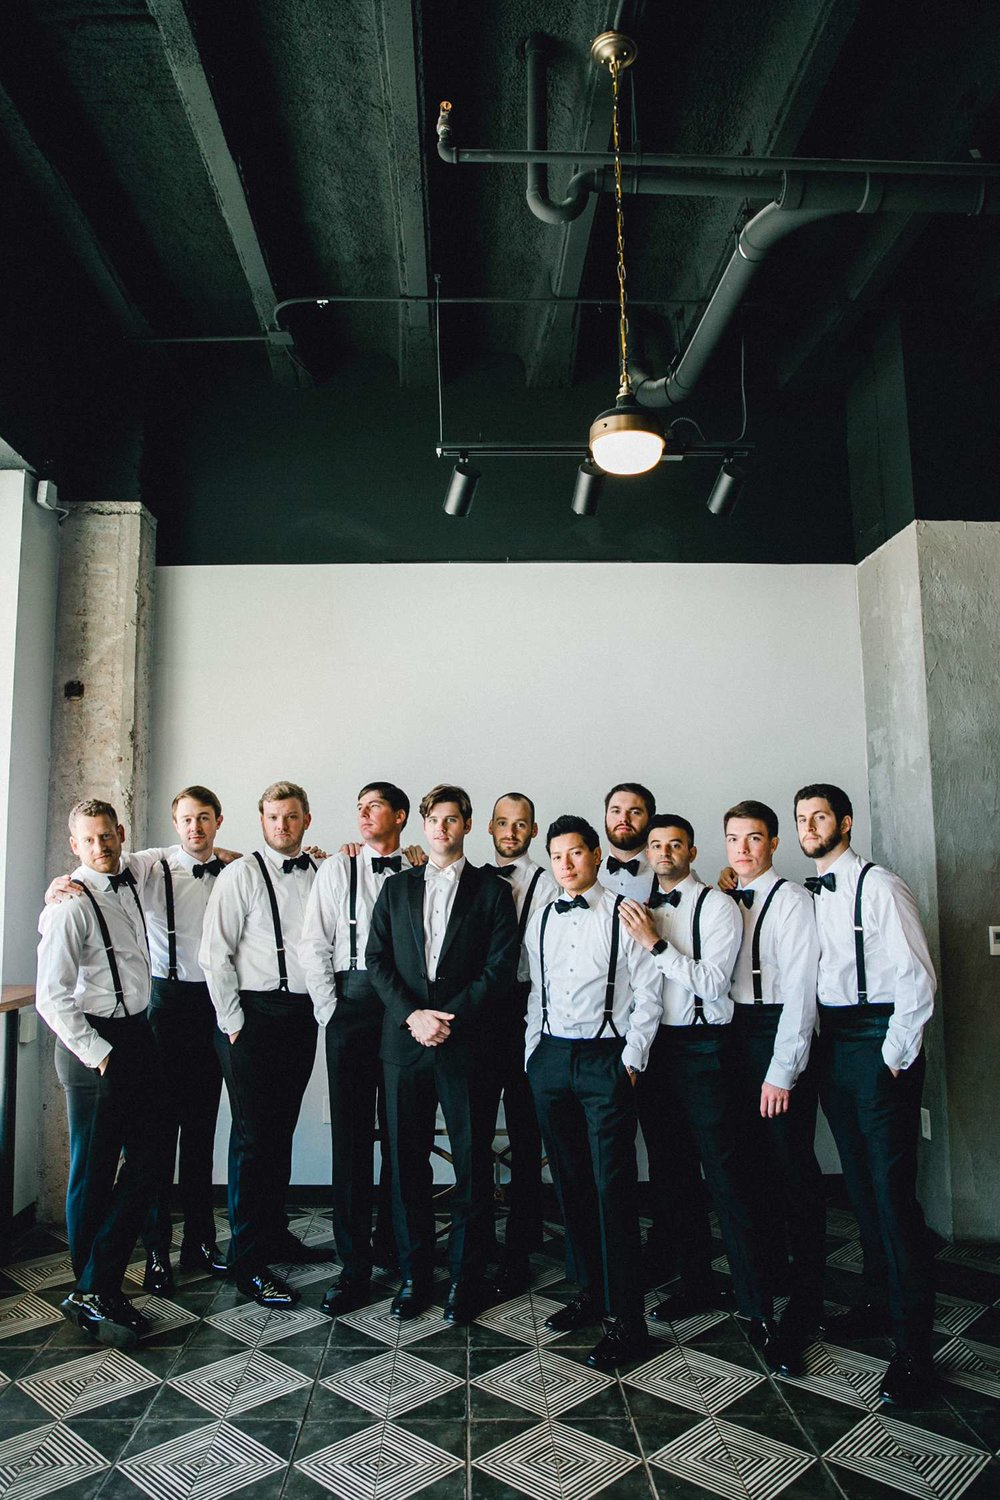 MARLEE+LLOYD+MORGAN+ALLEEJ+TEXAS+TECH+MERKET+ALUMNI+WEDDINGS+LUBBOCK+WEST+TABLE+CLASSIC+SPAIN_0029.jpg